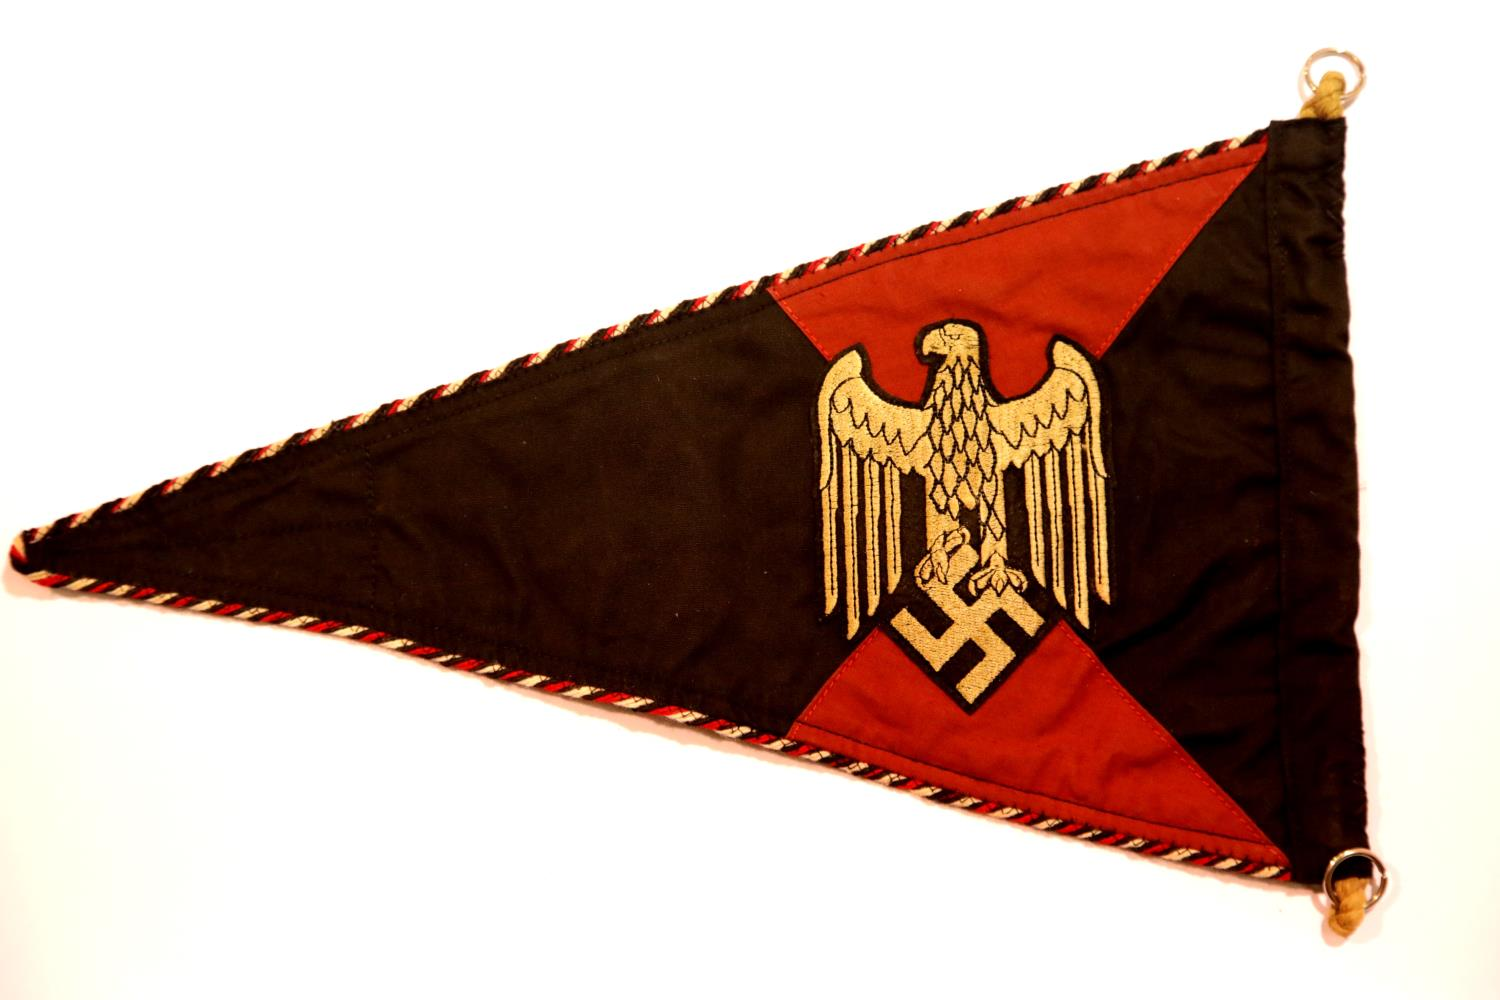 Lot 3020 - German WWII type Panzer pennant, L: 38 cm. P&P Group 1 (£14+VAT for the first lot and £1+VAT for